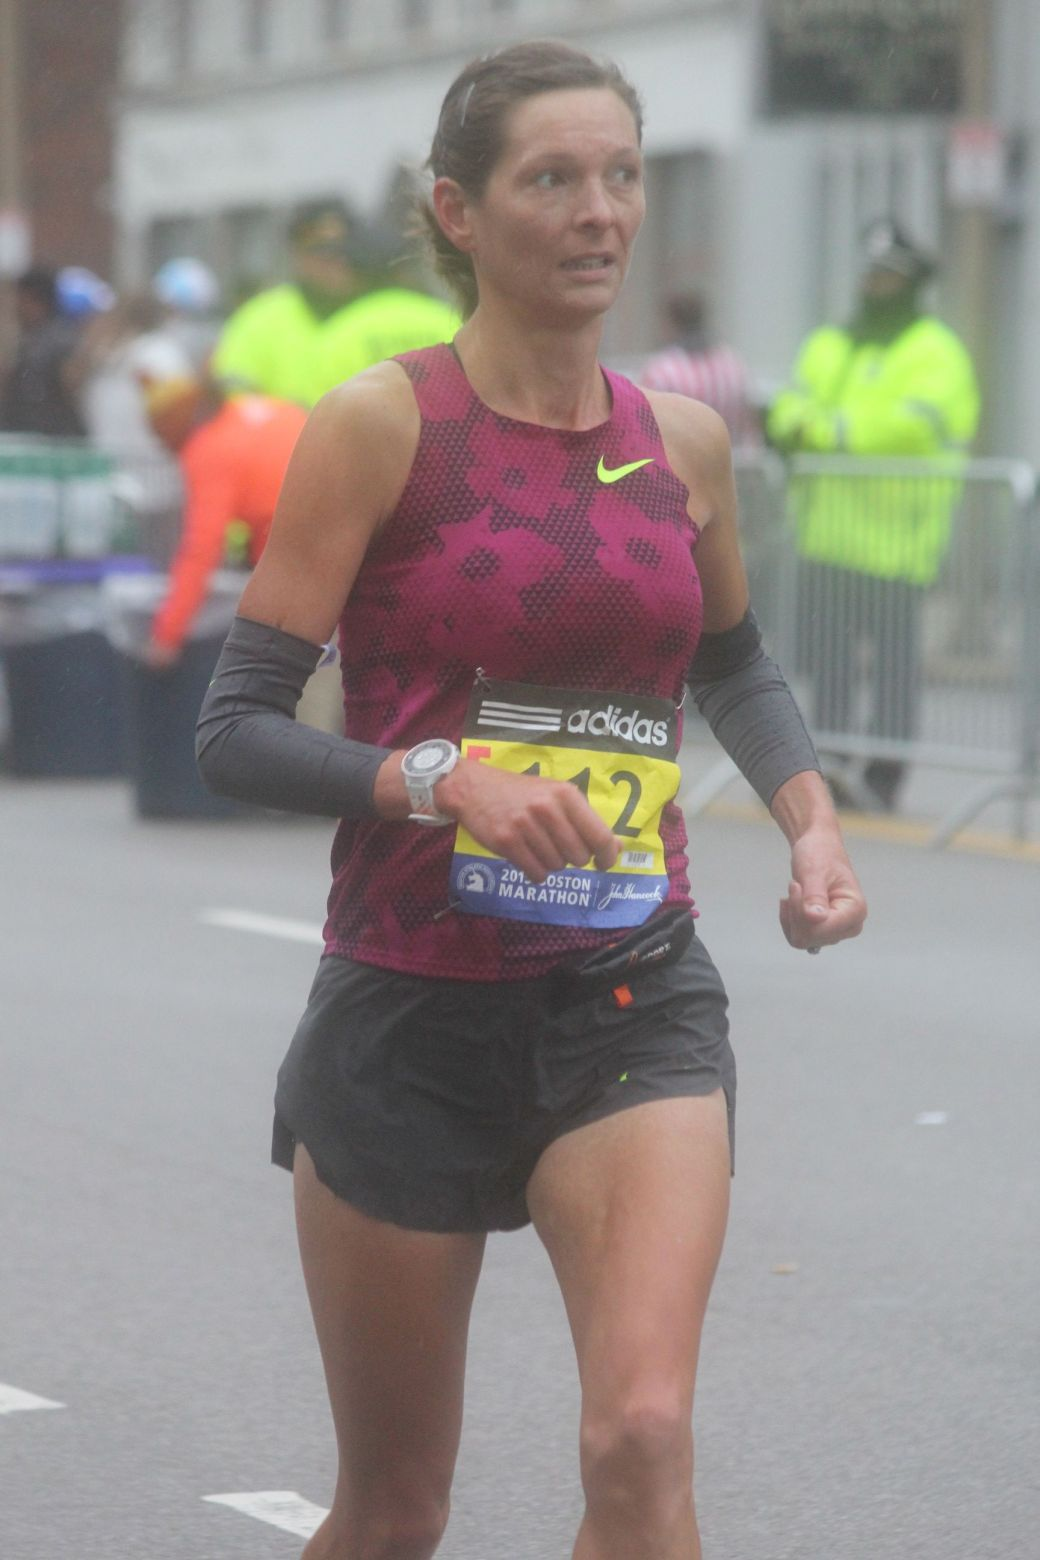 boston marathon april 20 2015 racer number 112